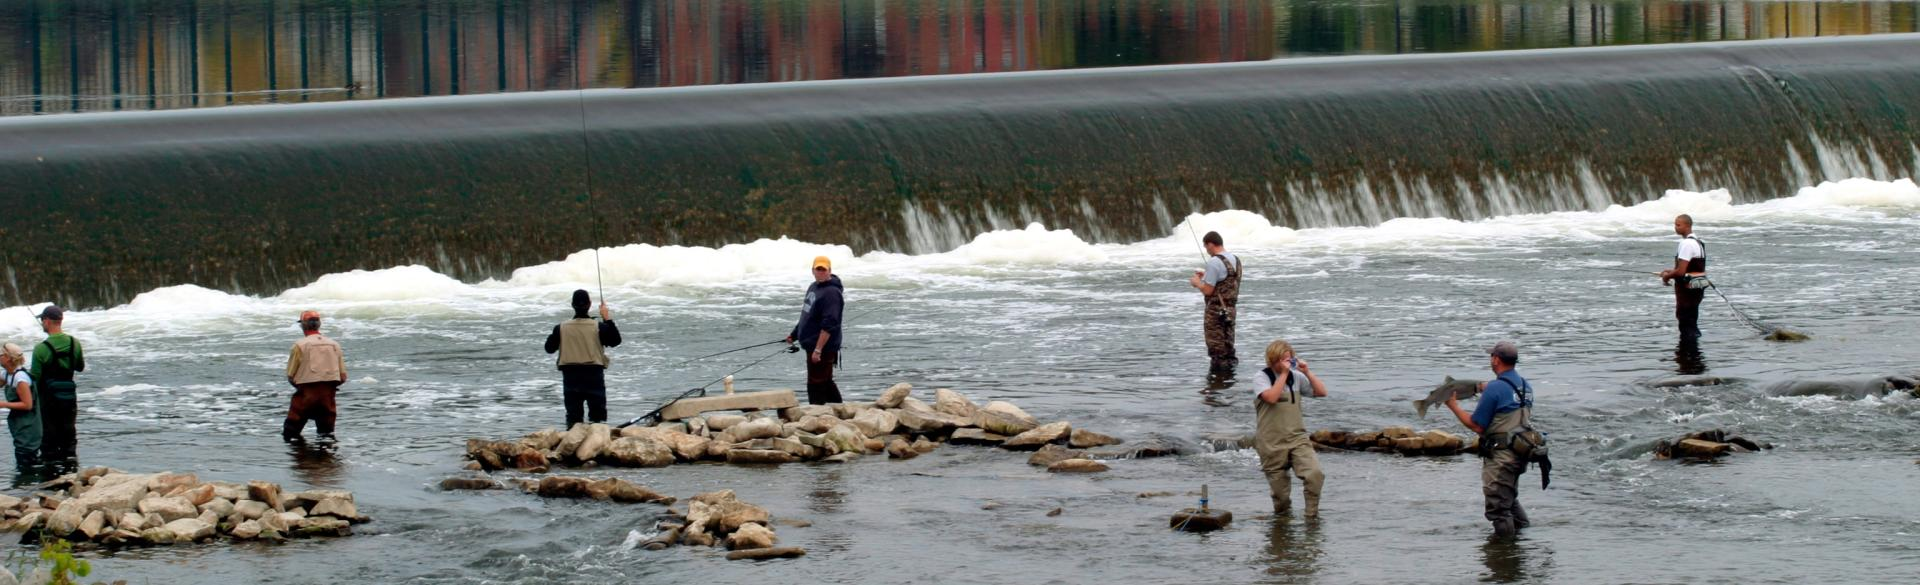 Fishing along the Grand River at the Sixth Street Dam.